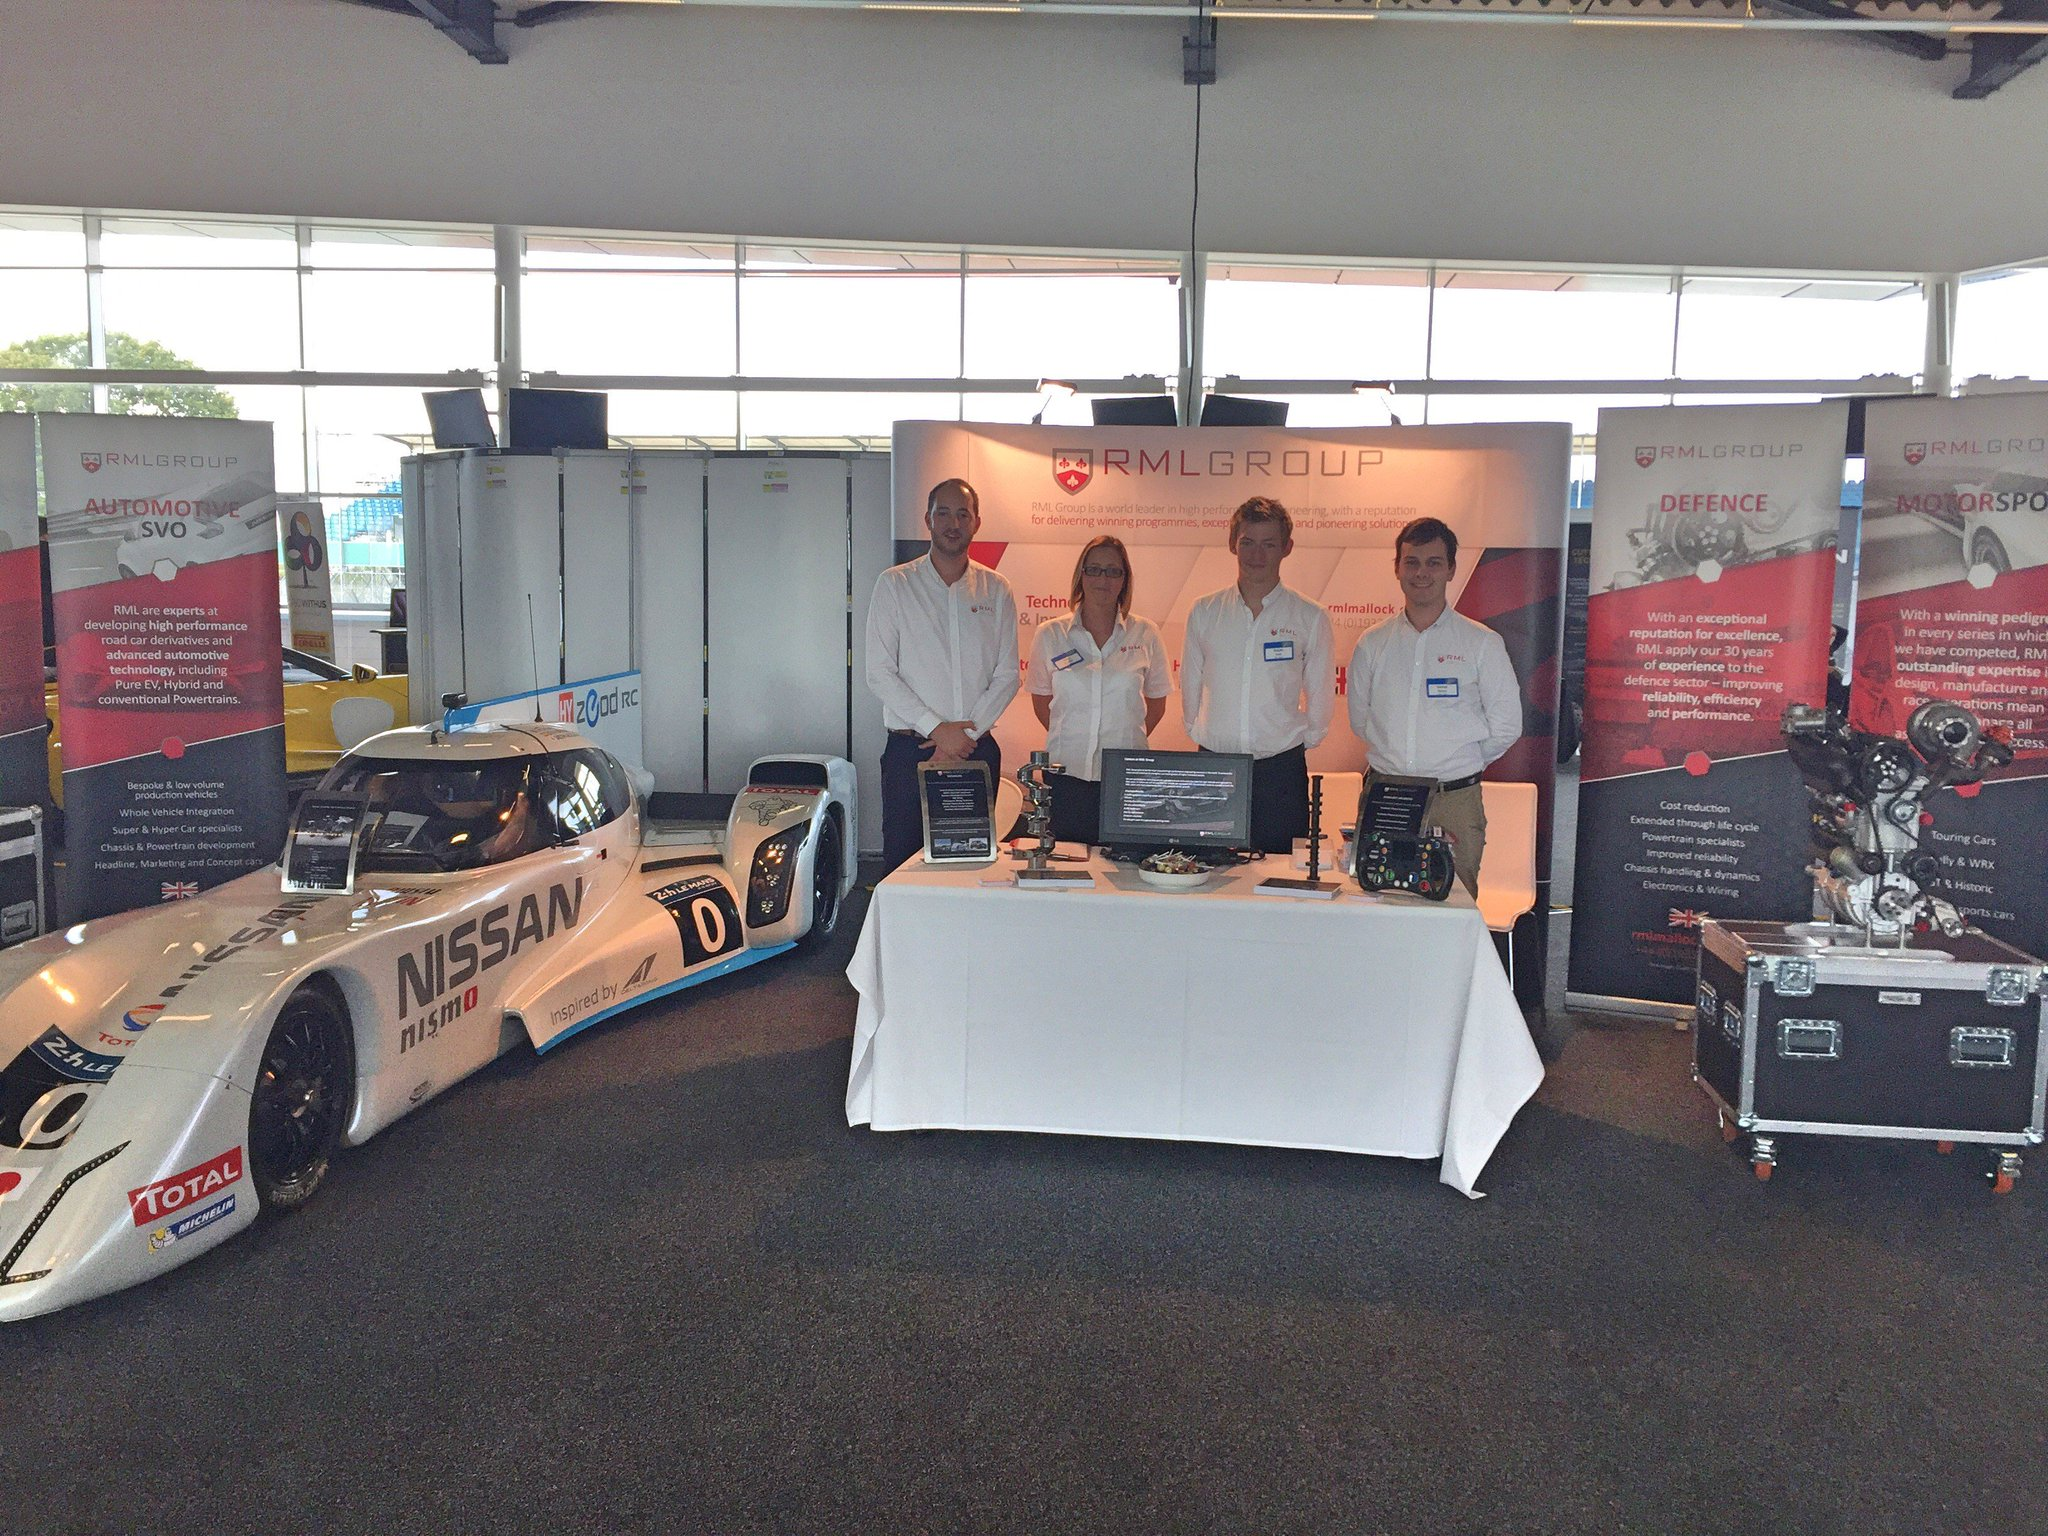 Rml Group On Twitter Rmlgroup Ready For Action At The Vehicle Wiring Specialists Miajobsfair Make Sure You Stop By A Visit Future Engineering Motorsport Automotive